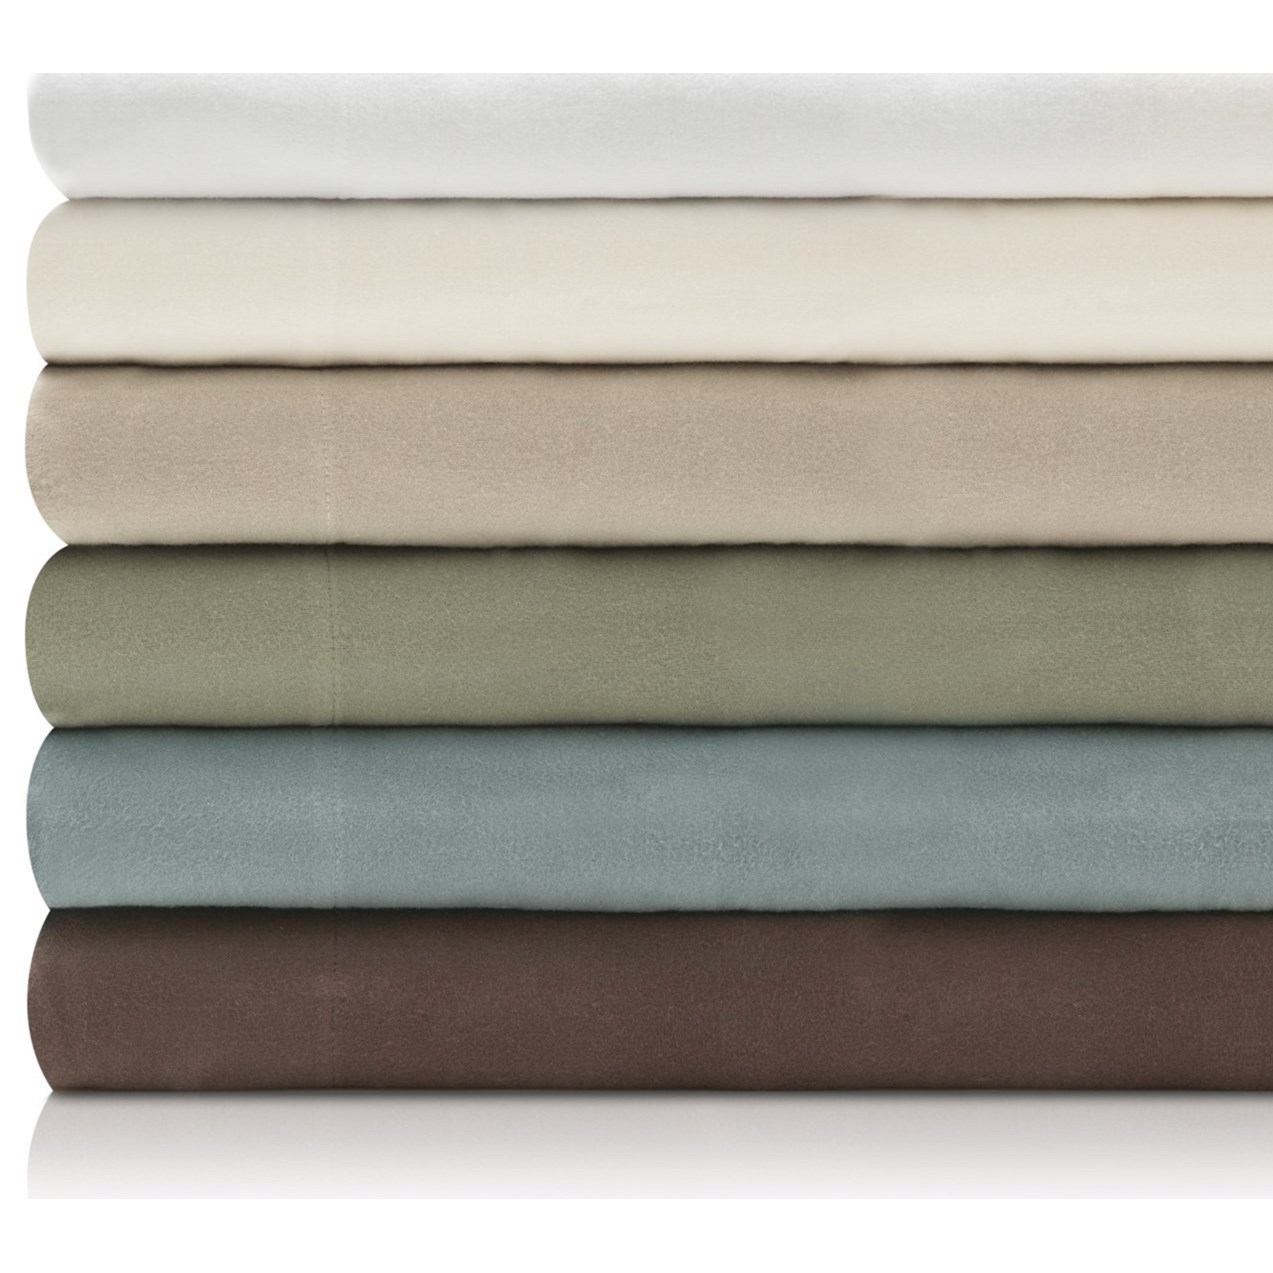 Malouf Portuguese Flannel Full Woven™ Portuguese Flannel Sheet Set - Item Number: WO19FFPNFS